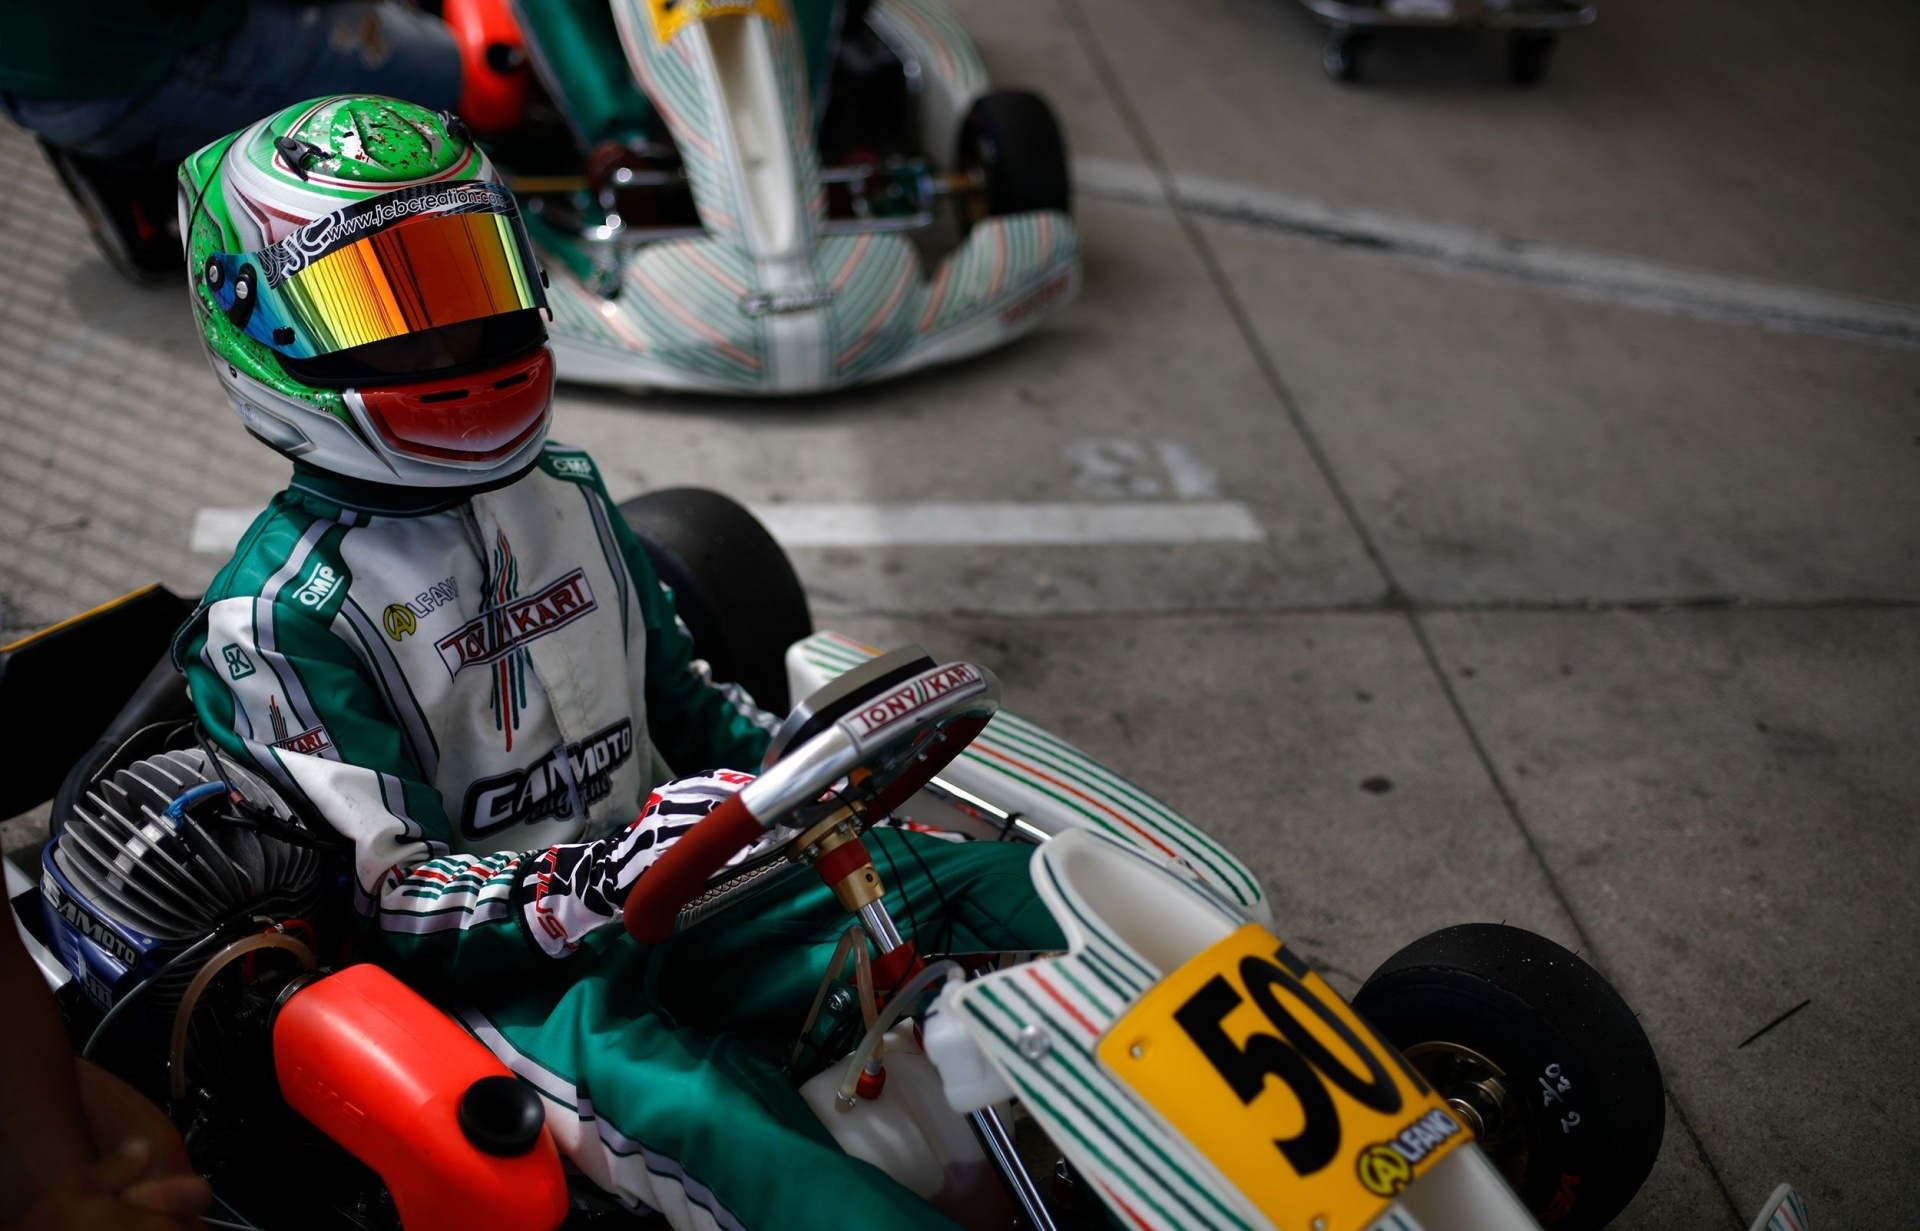 Highs and Lows for Gamoto Kart in Adria